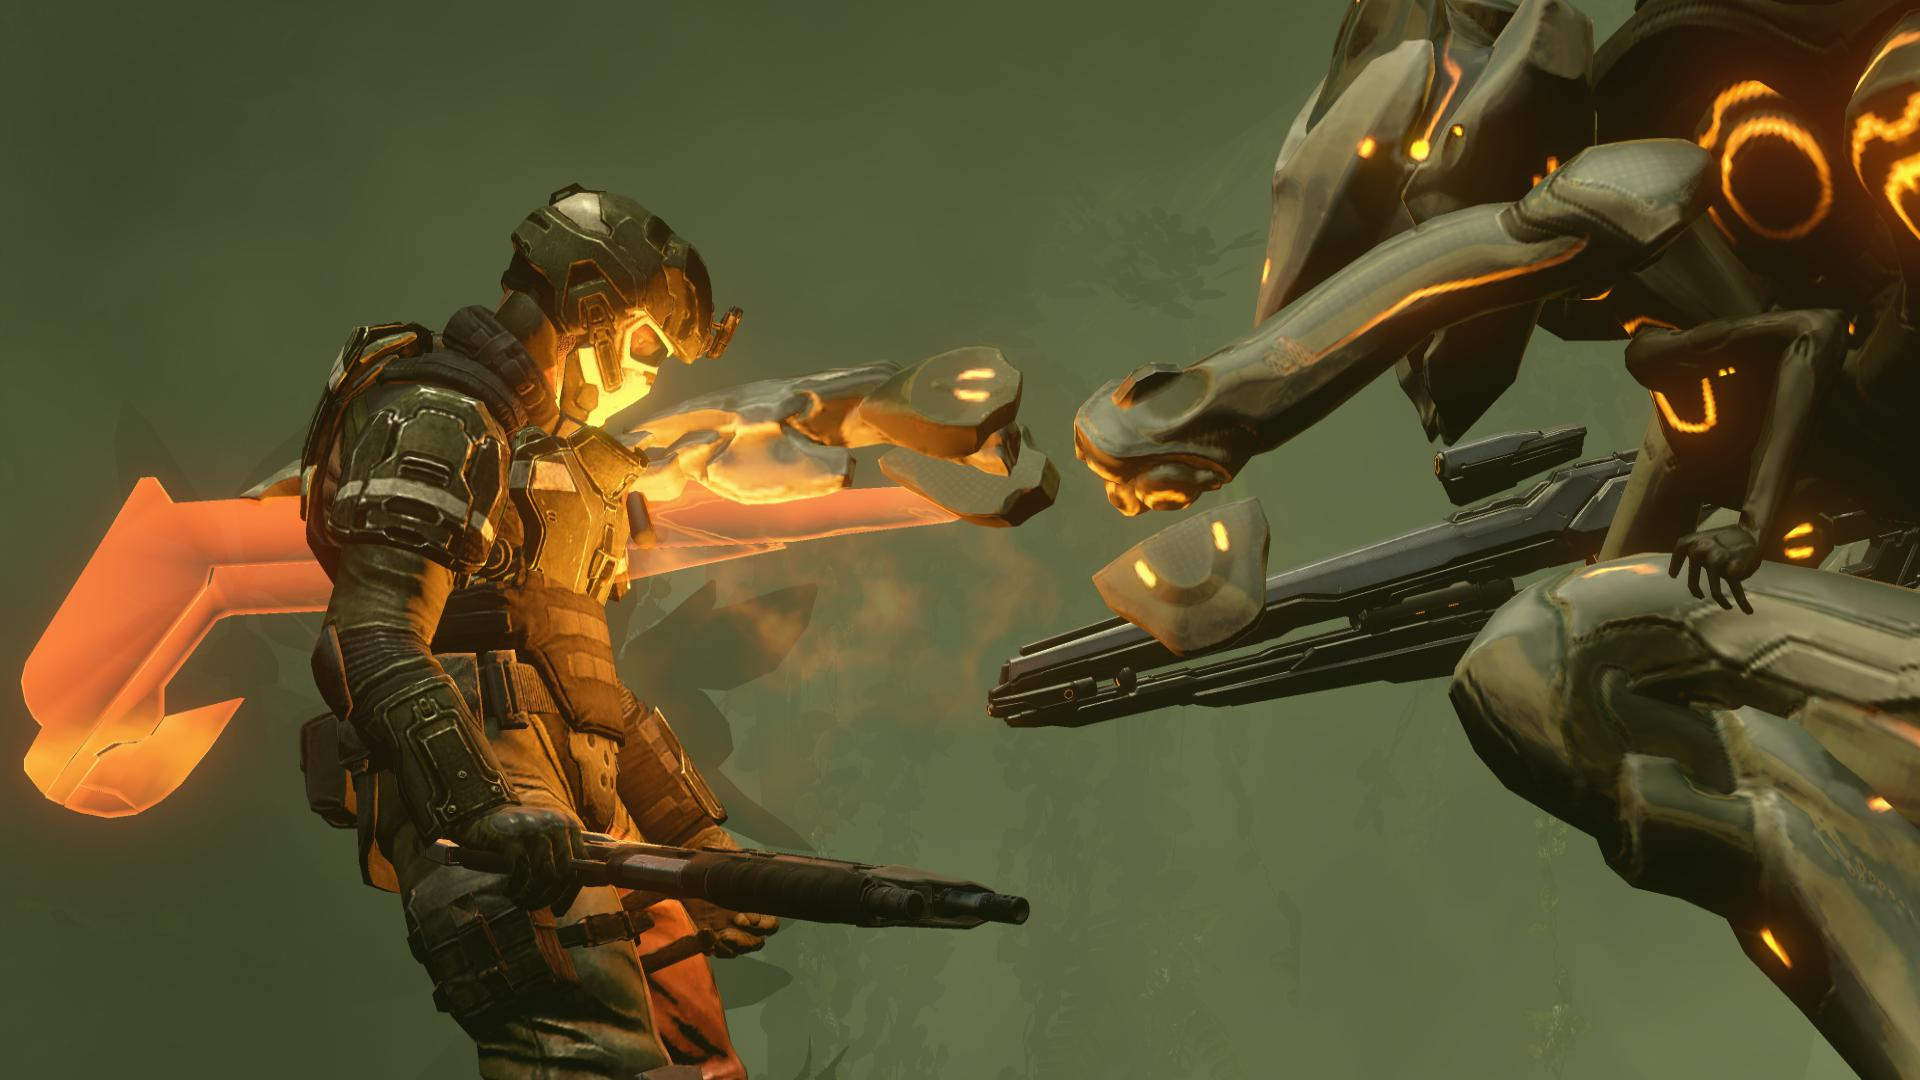 Halo 4 campaign theater screenshots halo diehards - Halo 4 pictures ...